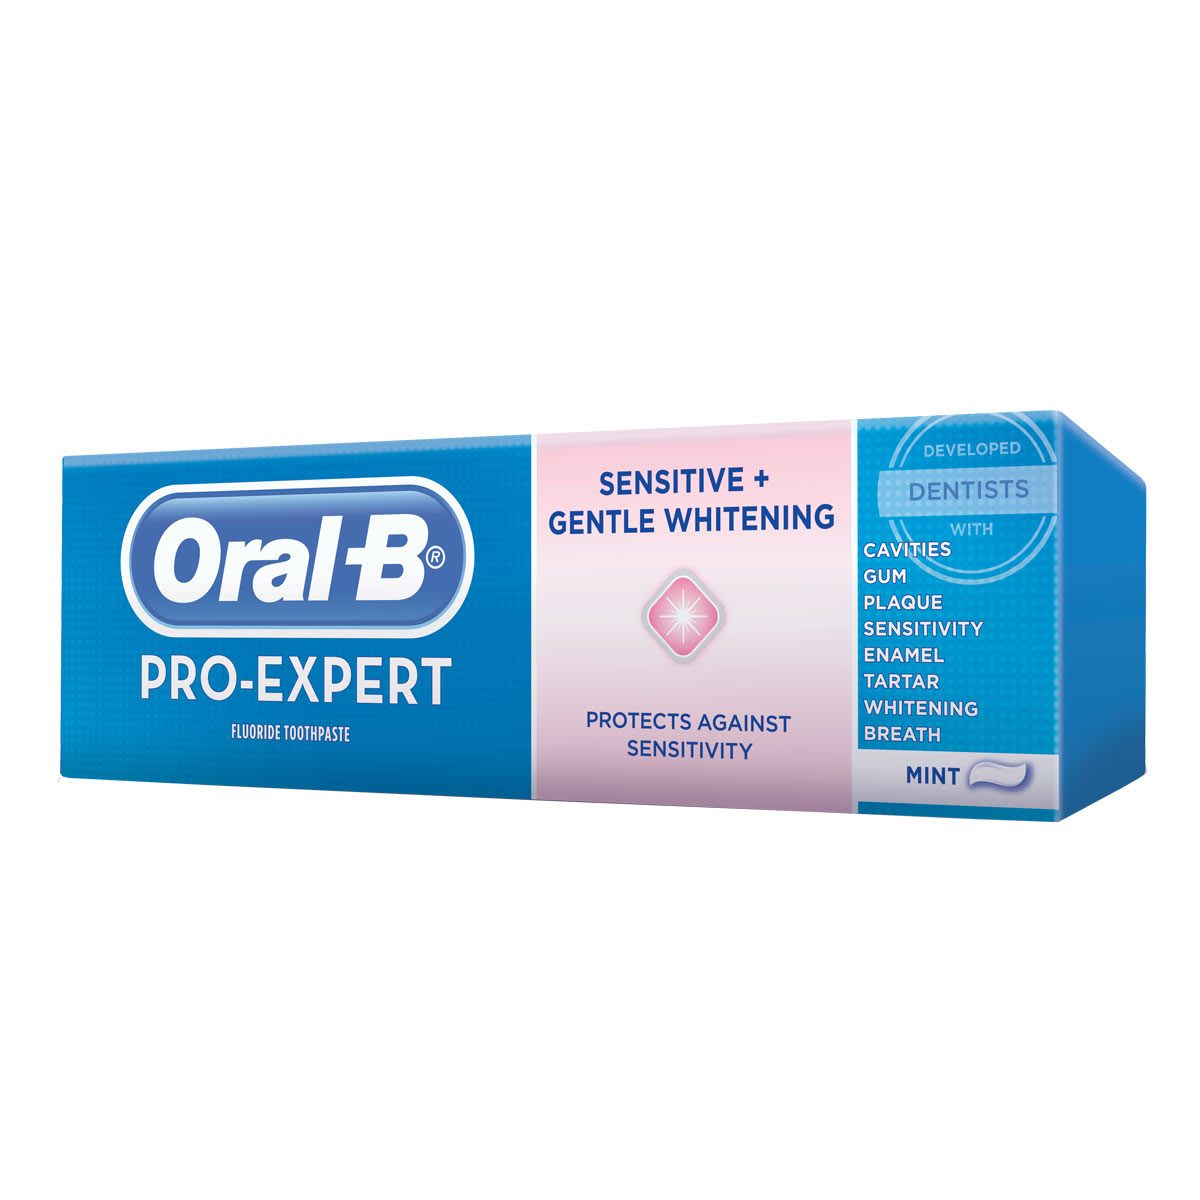 ORAL-B BEST TOOTHPASTE BRANDS IN THE WORLD